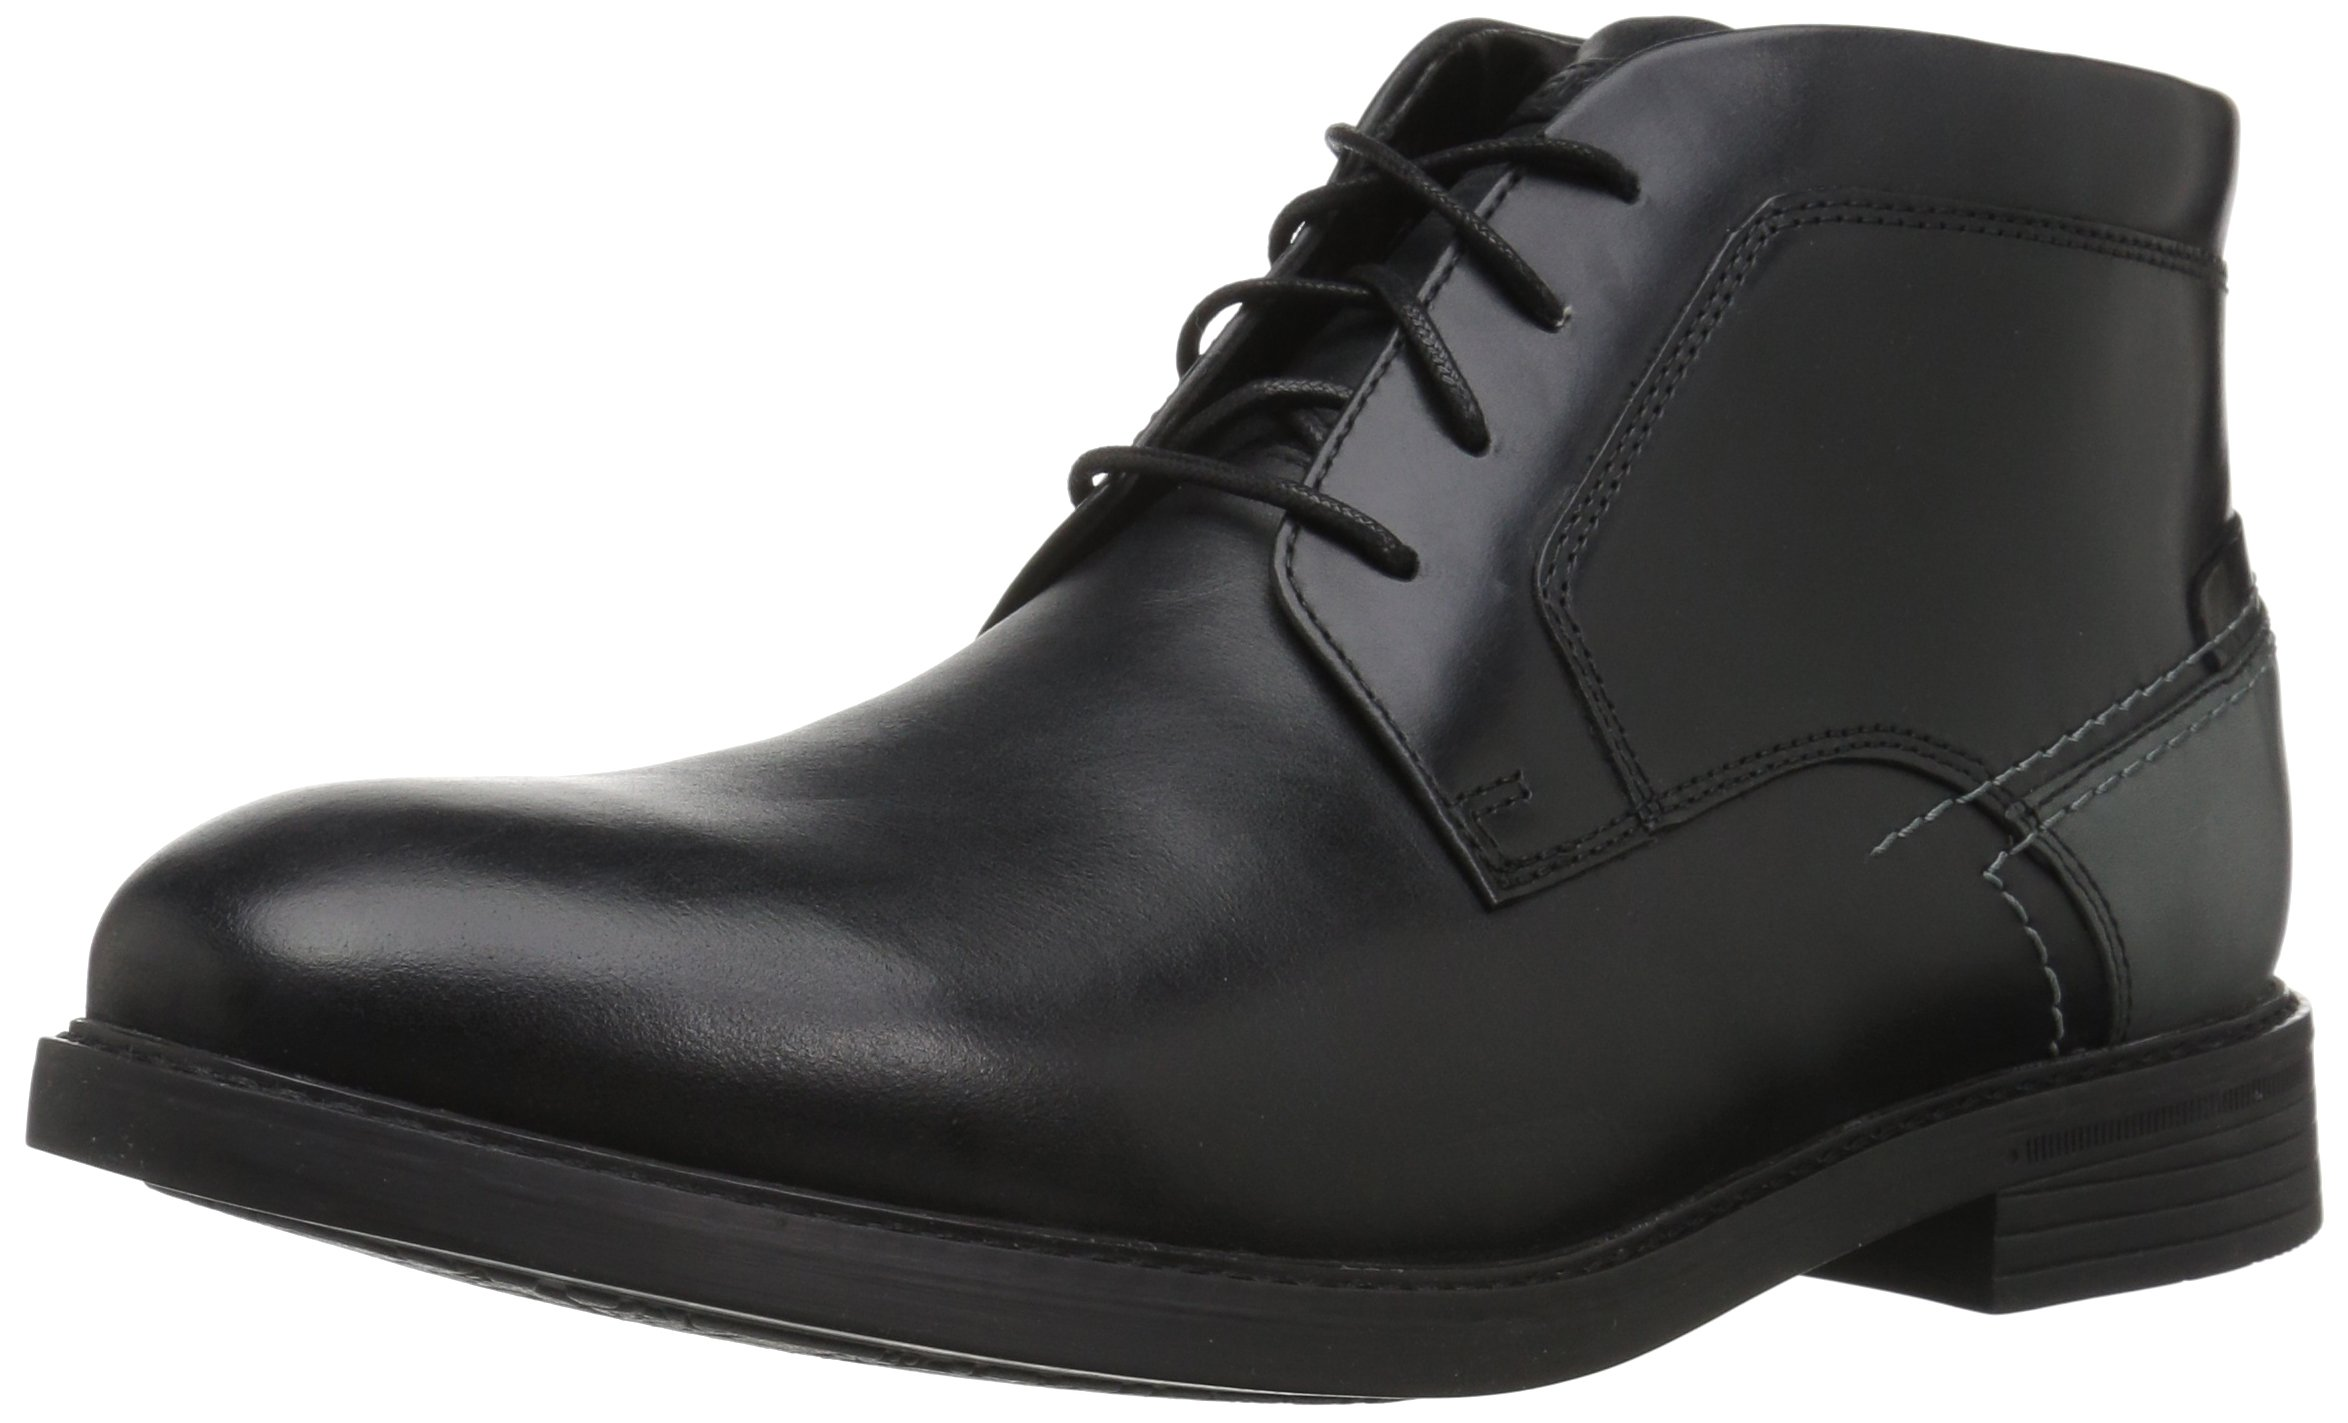 Rockport Men's Collyns Low Boot Chukka Boot, Black, 11 M US